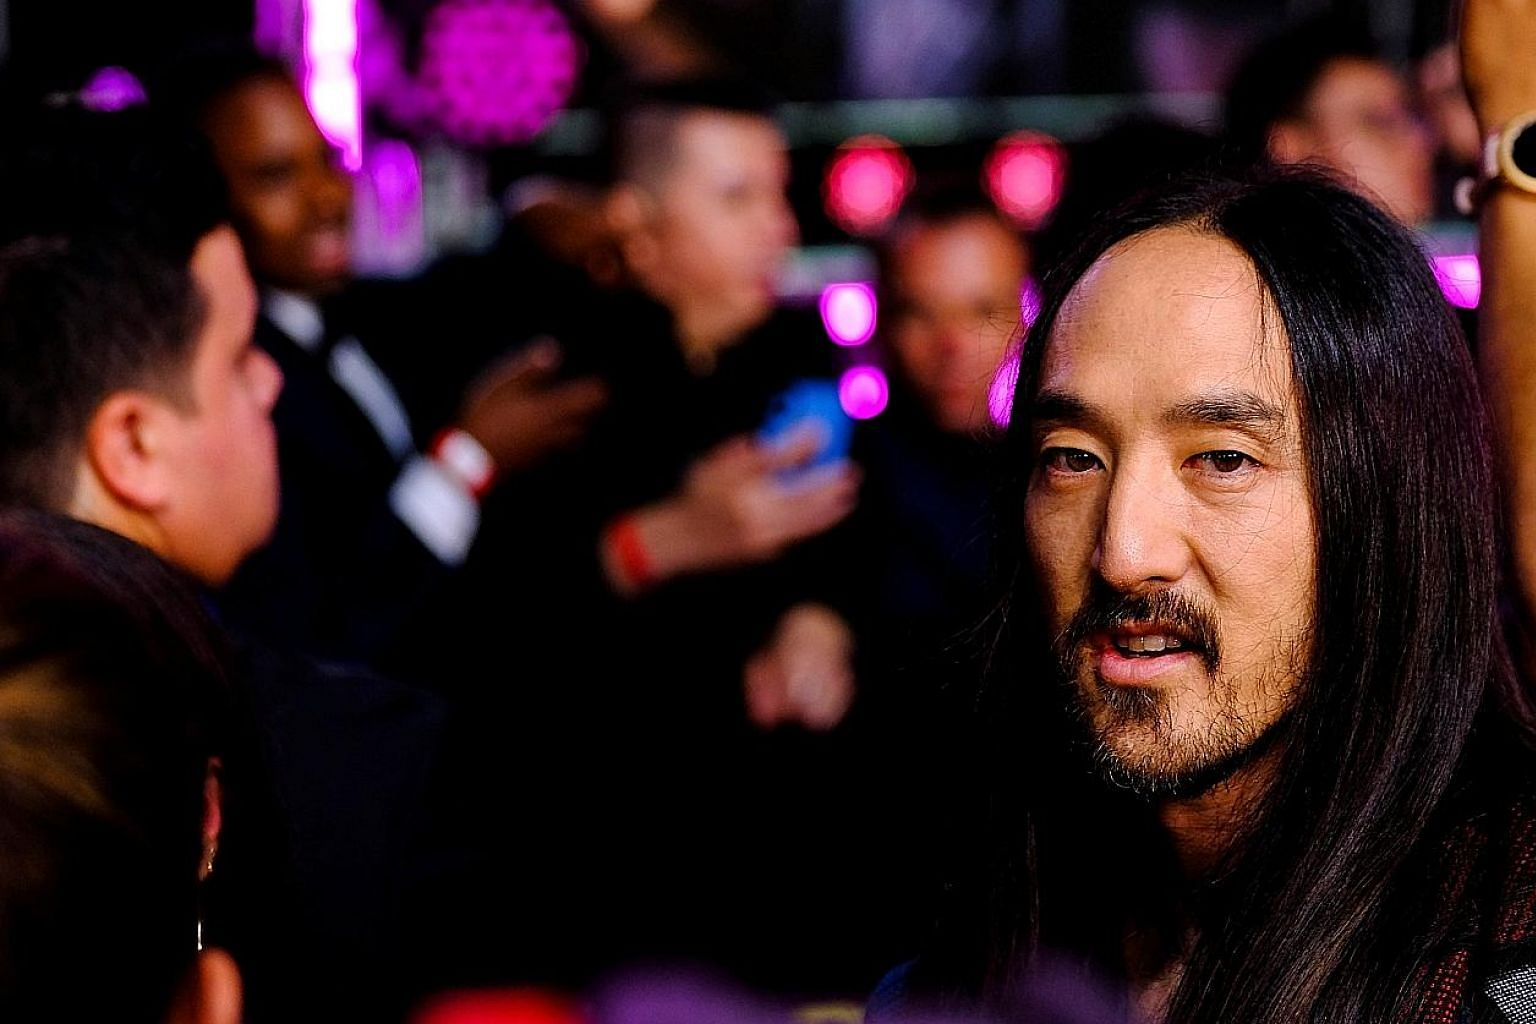 American DJ Steve Aoki will play music from his newly released Neon Future IV album at Marquee Singapore's first anniversary party next Friday. Dutch DJ Nicky Romero, who performed at Marquee Singapore last year, has been using the time off the road